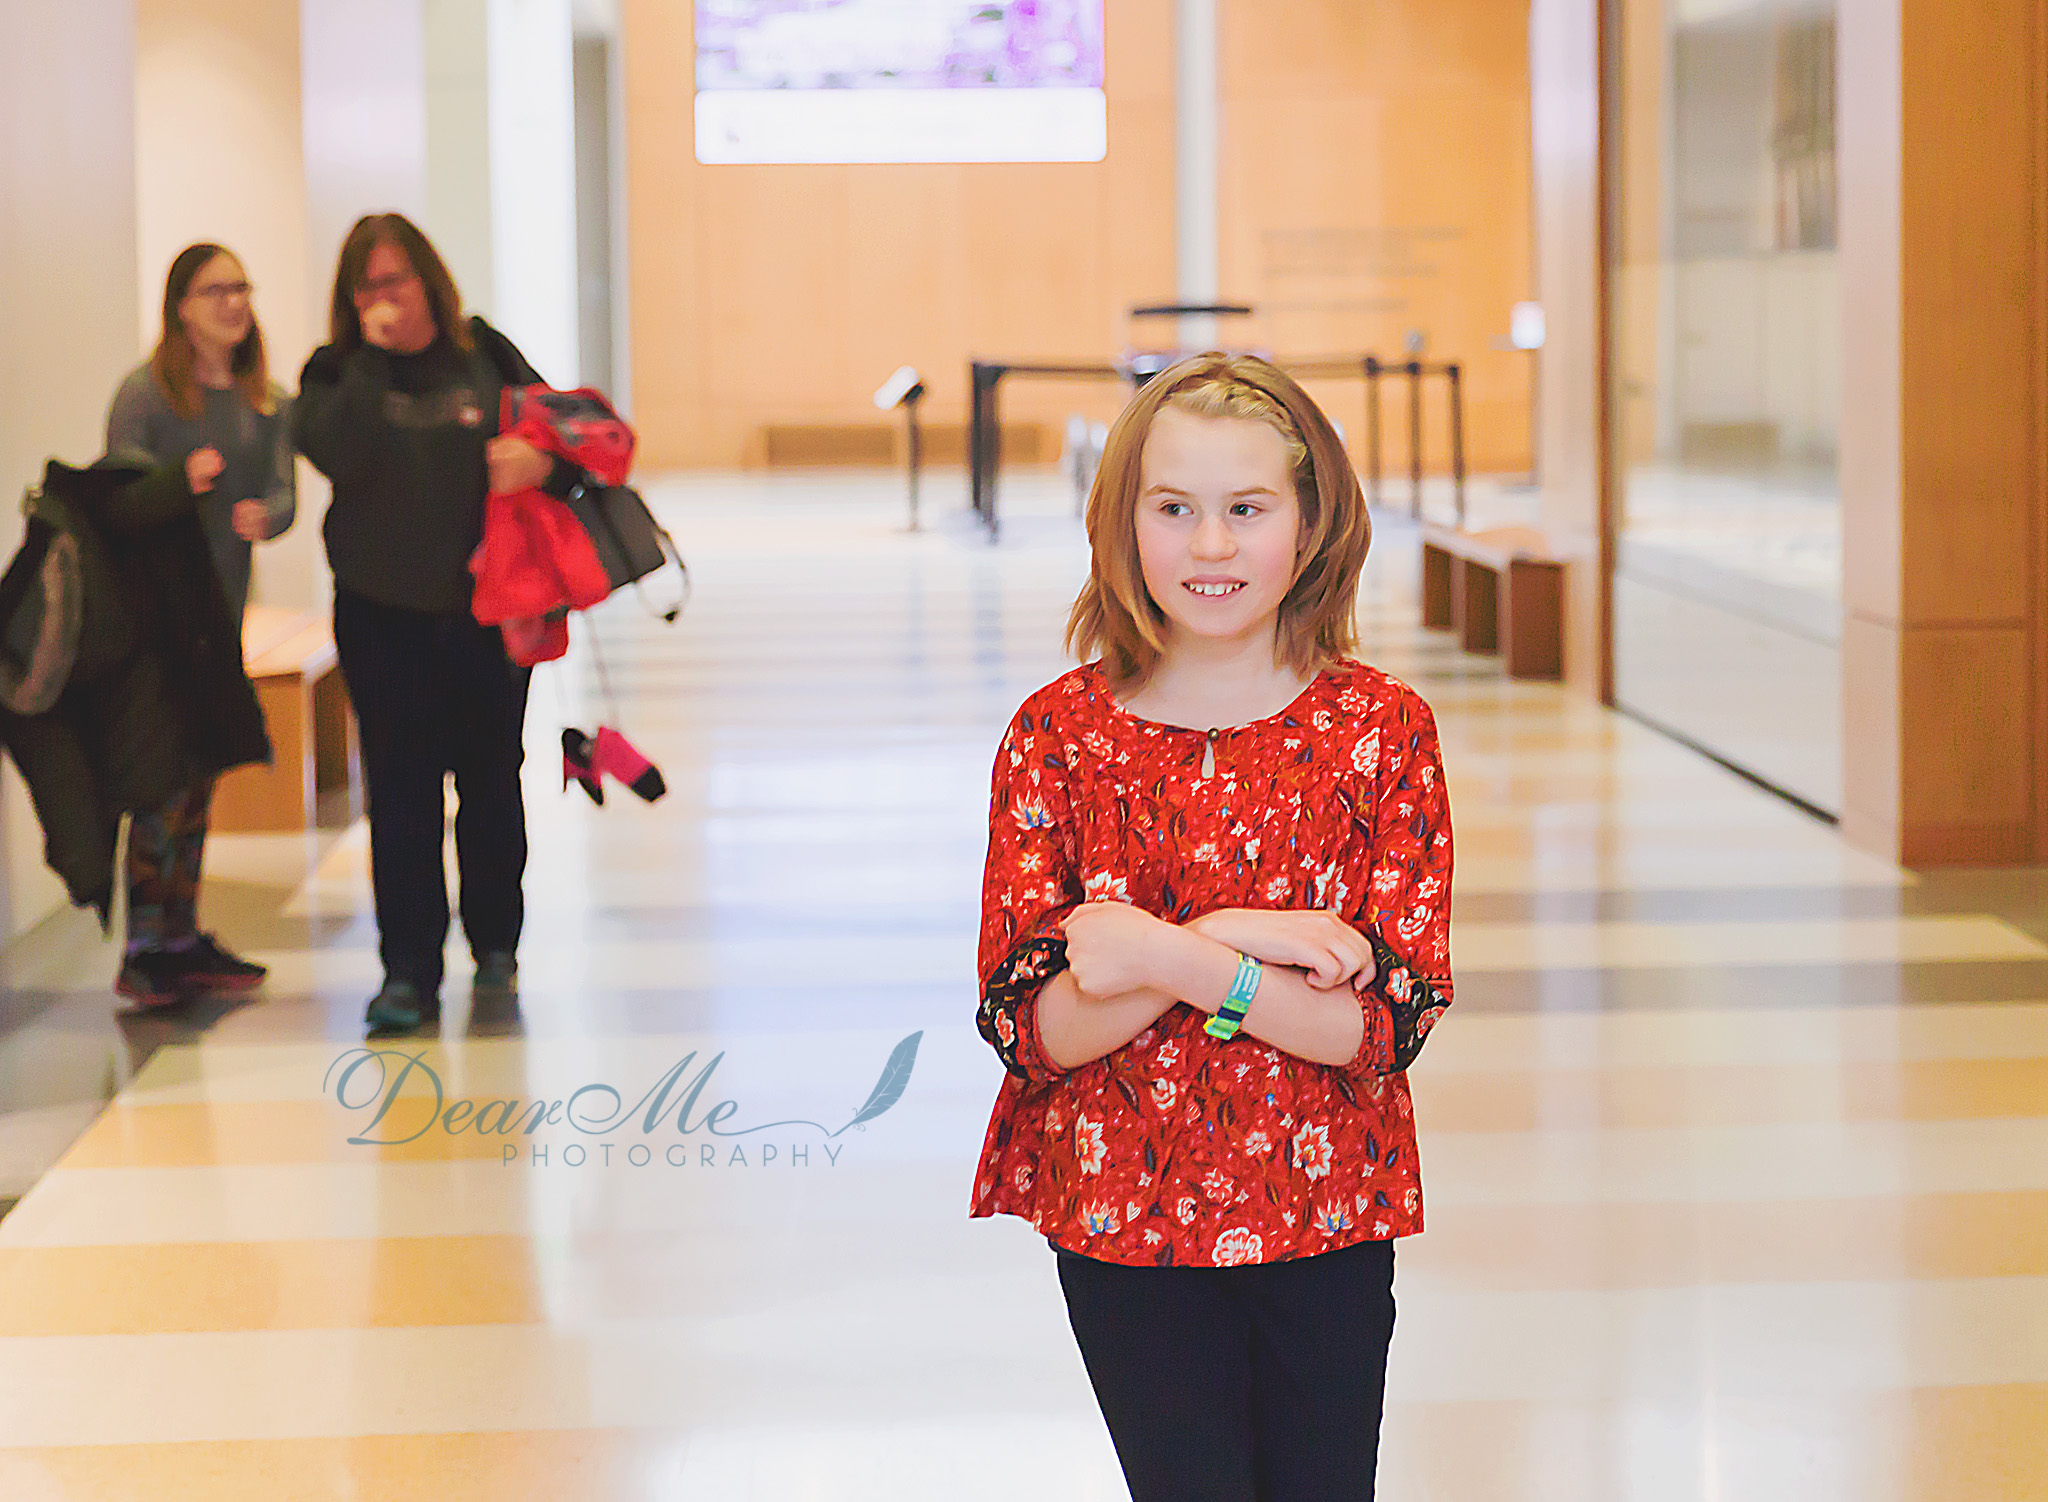 dear me photography bismarck teen photographer girl smiling with 2 women in background